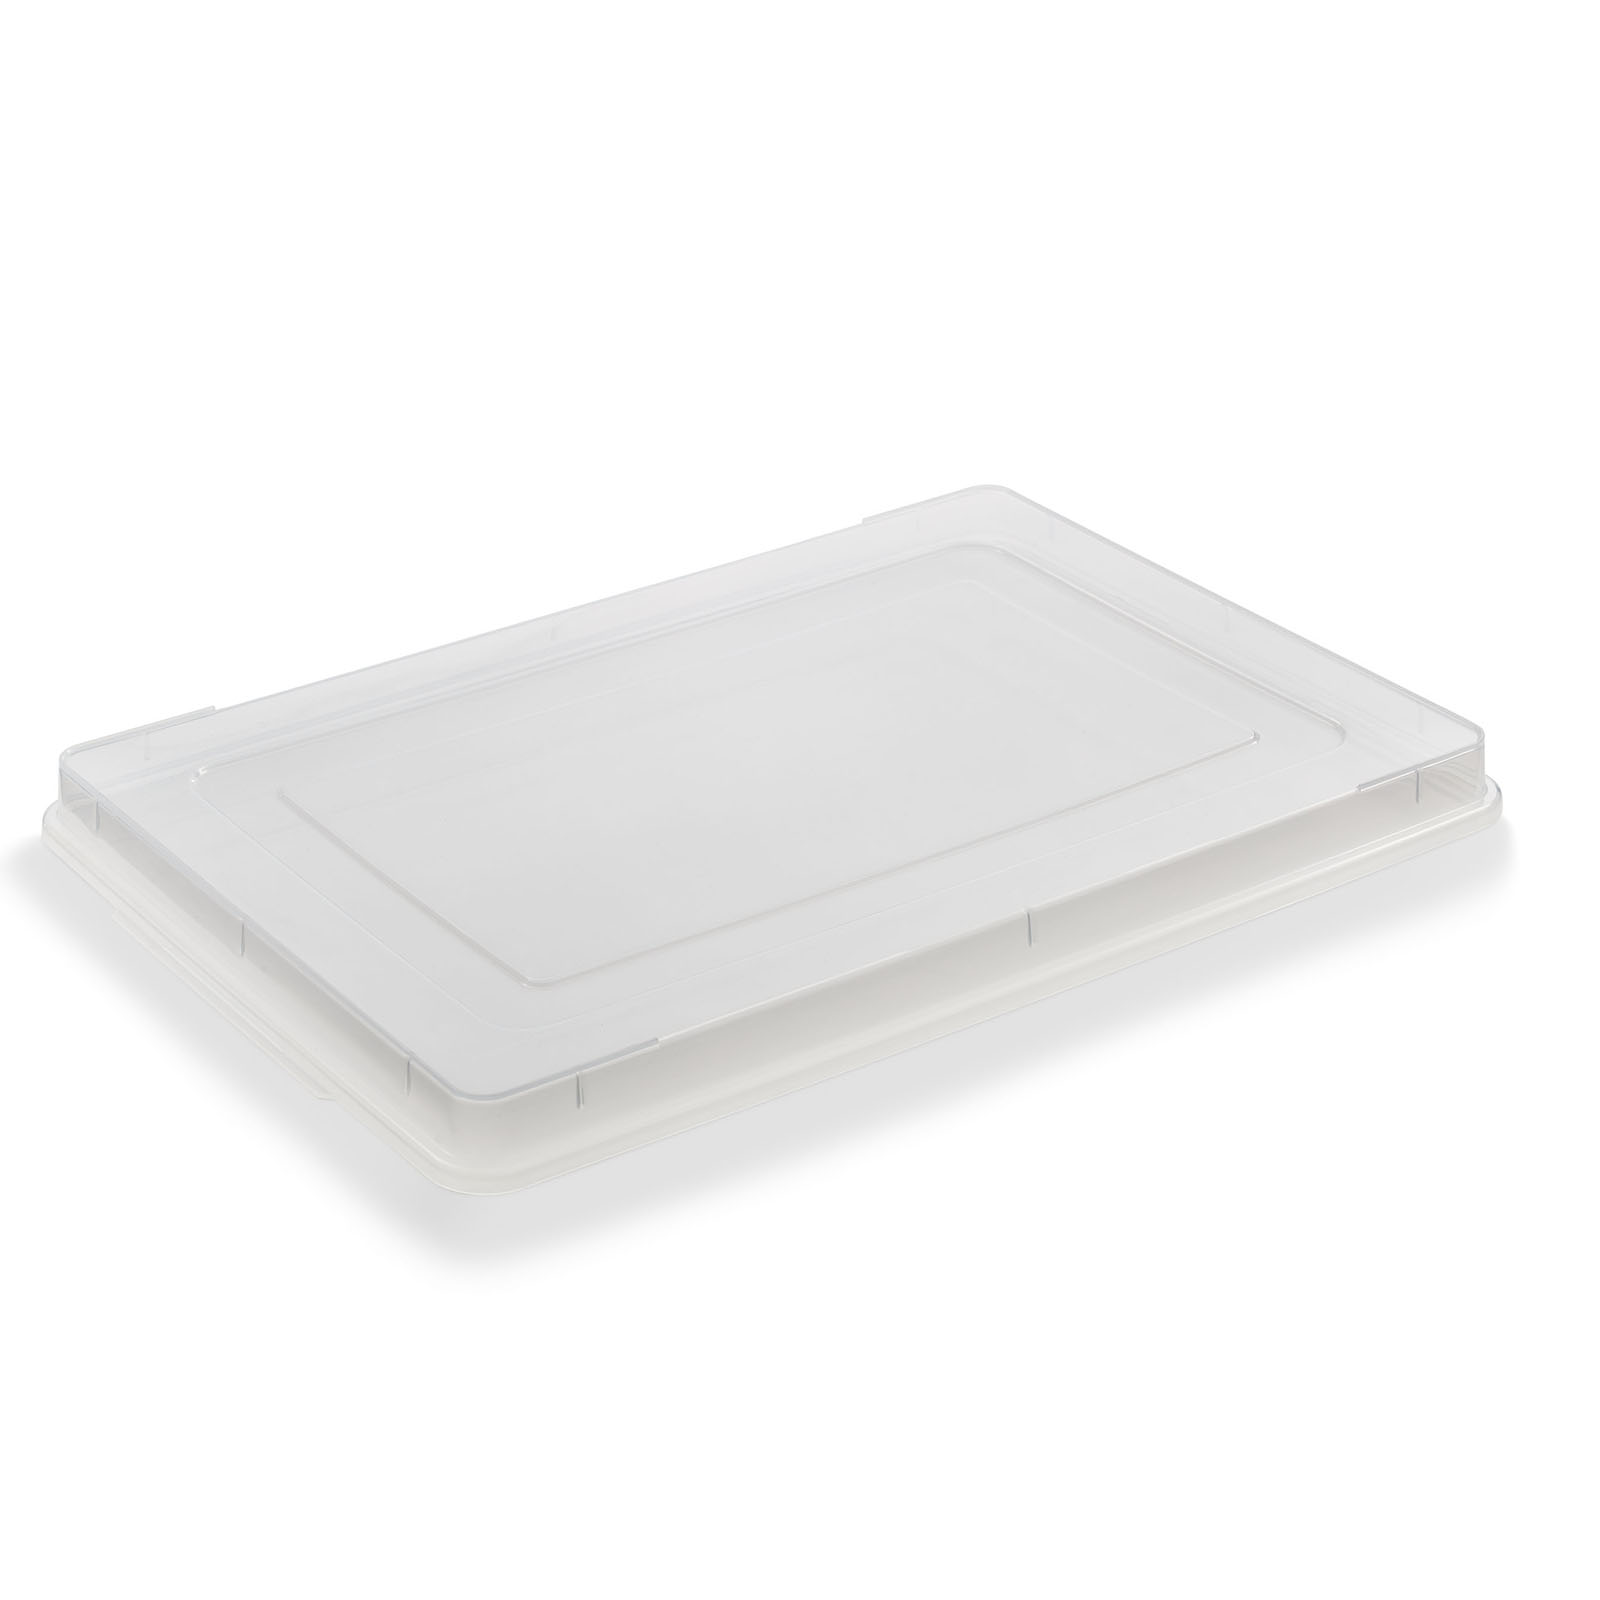 Vollrath 9002CV bun / sheet pan, cover